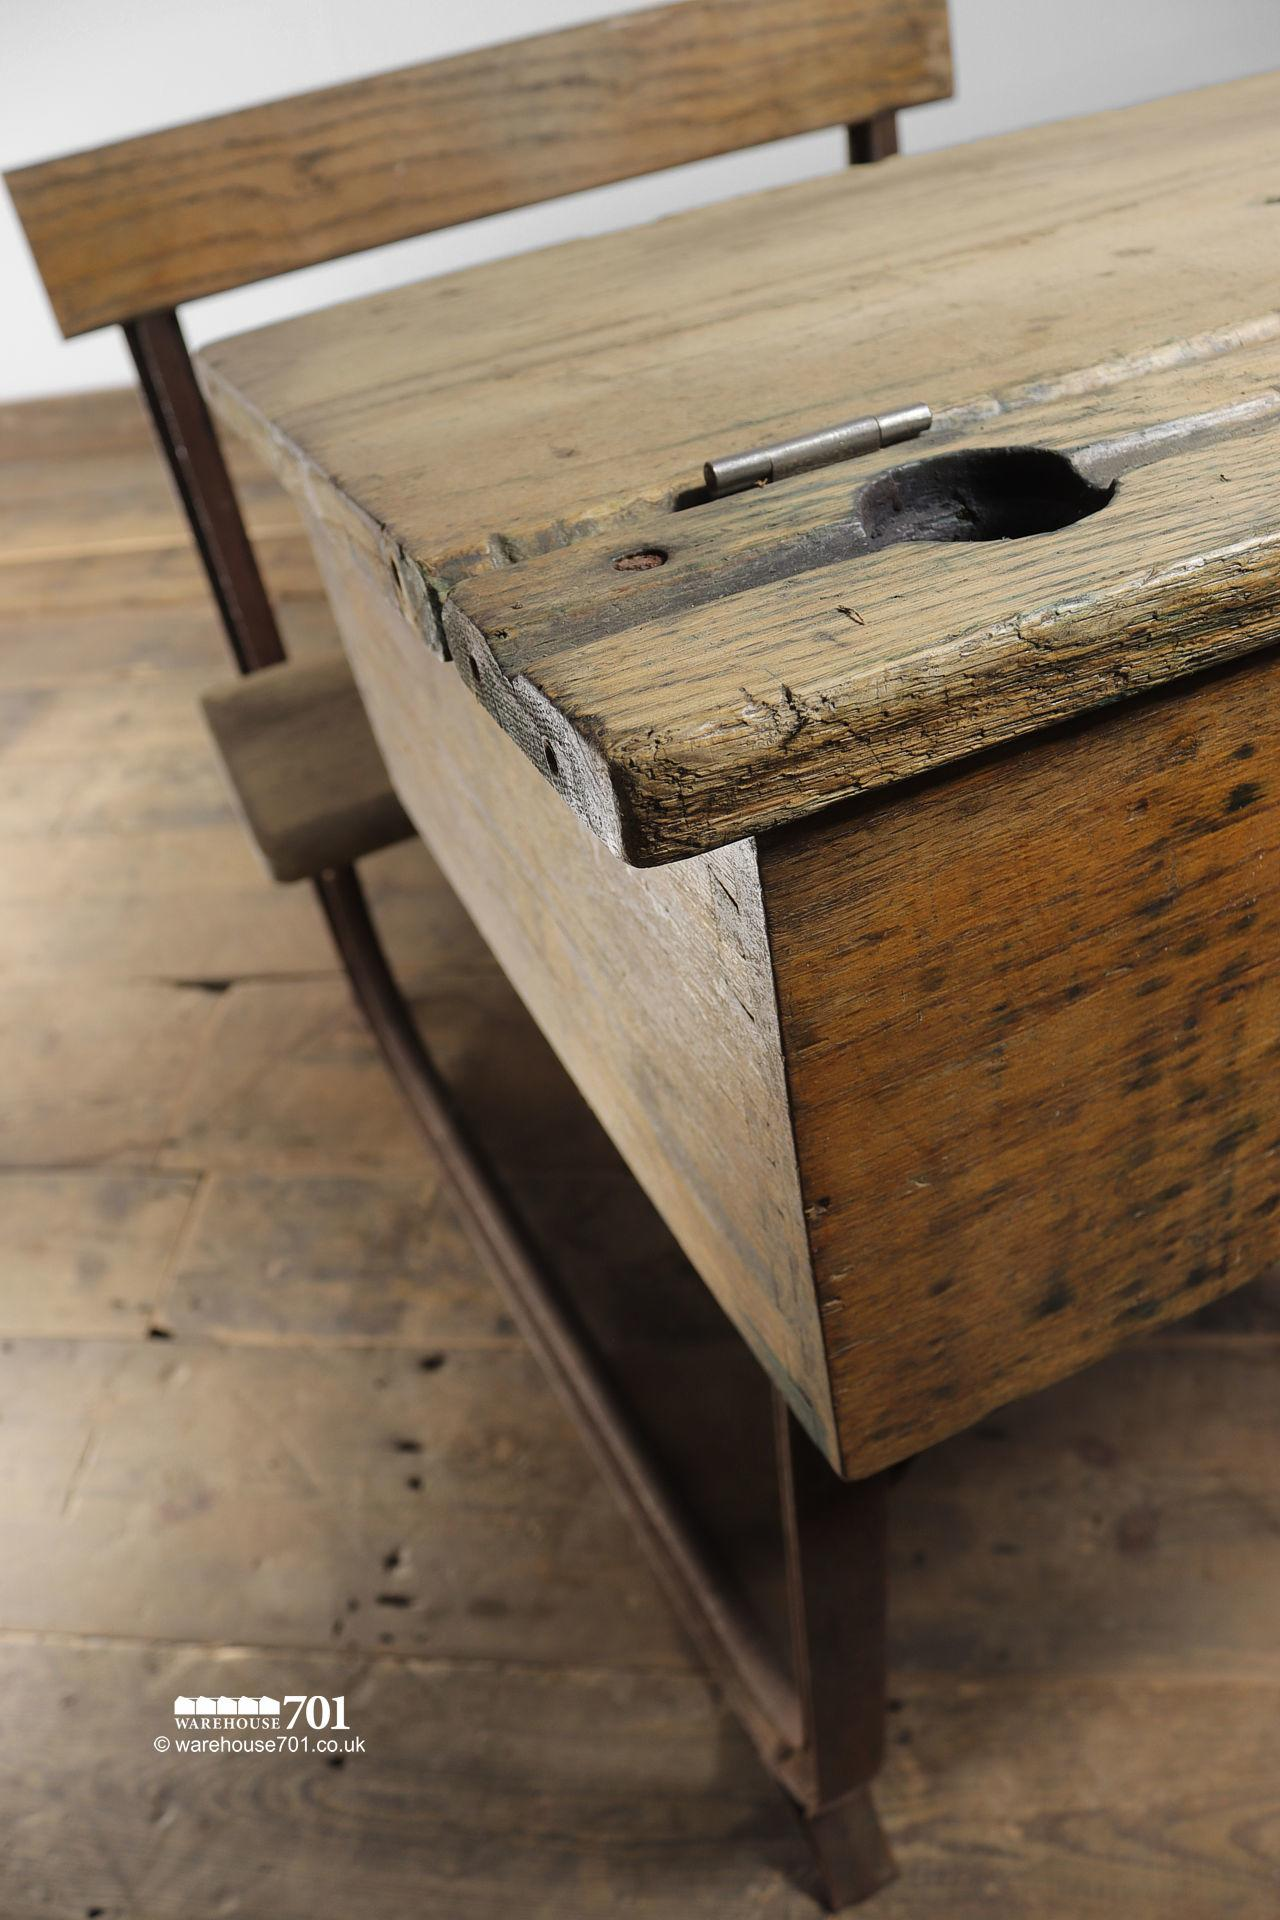 Reclaimed Wooden Childs School Desk and Seat #3